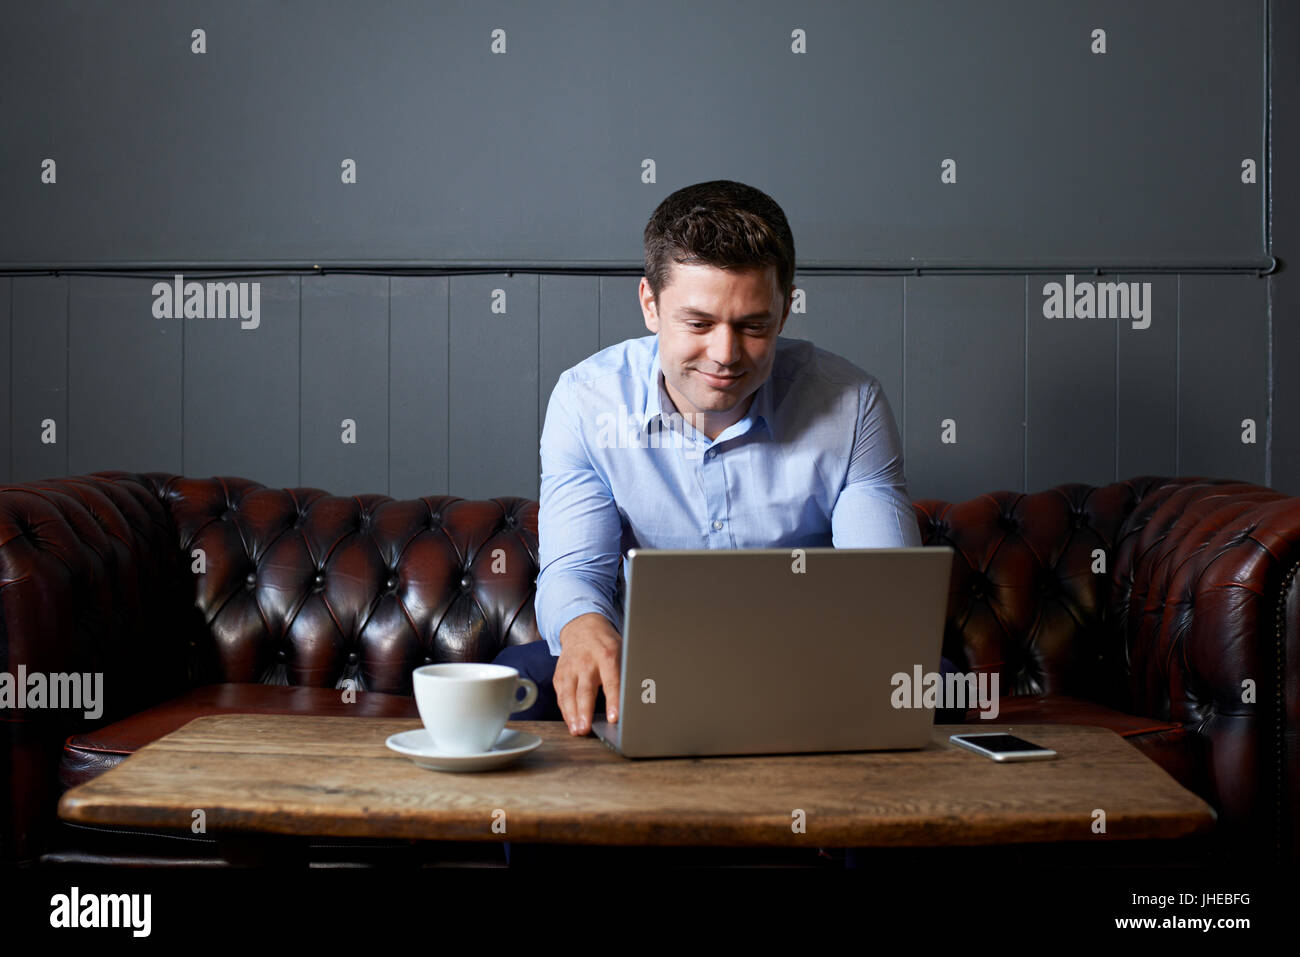 Man Working On Laptop In Internet Cafe - Stock Image